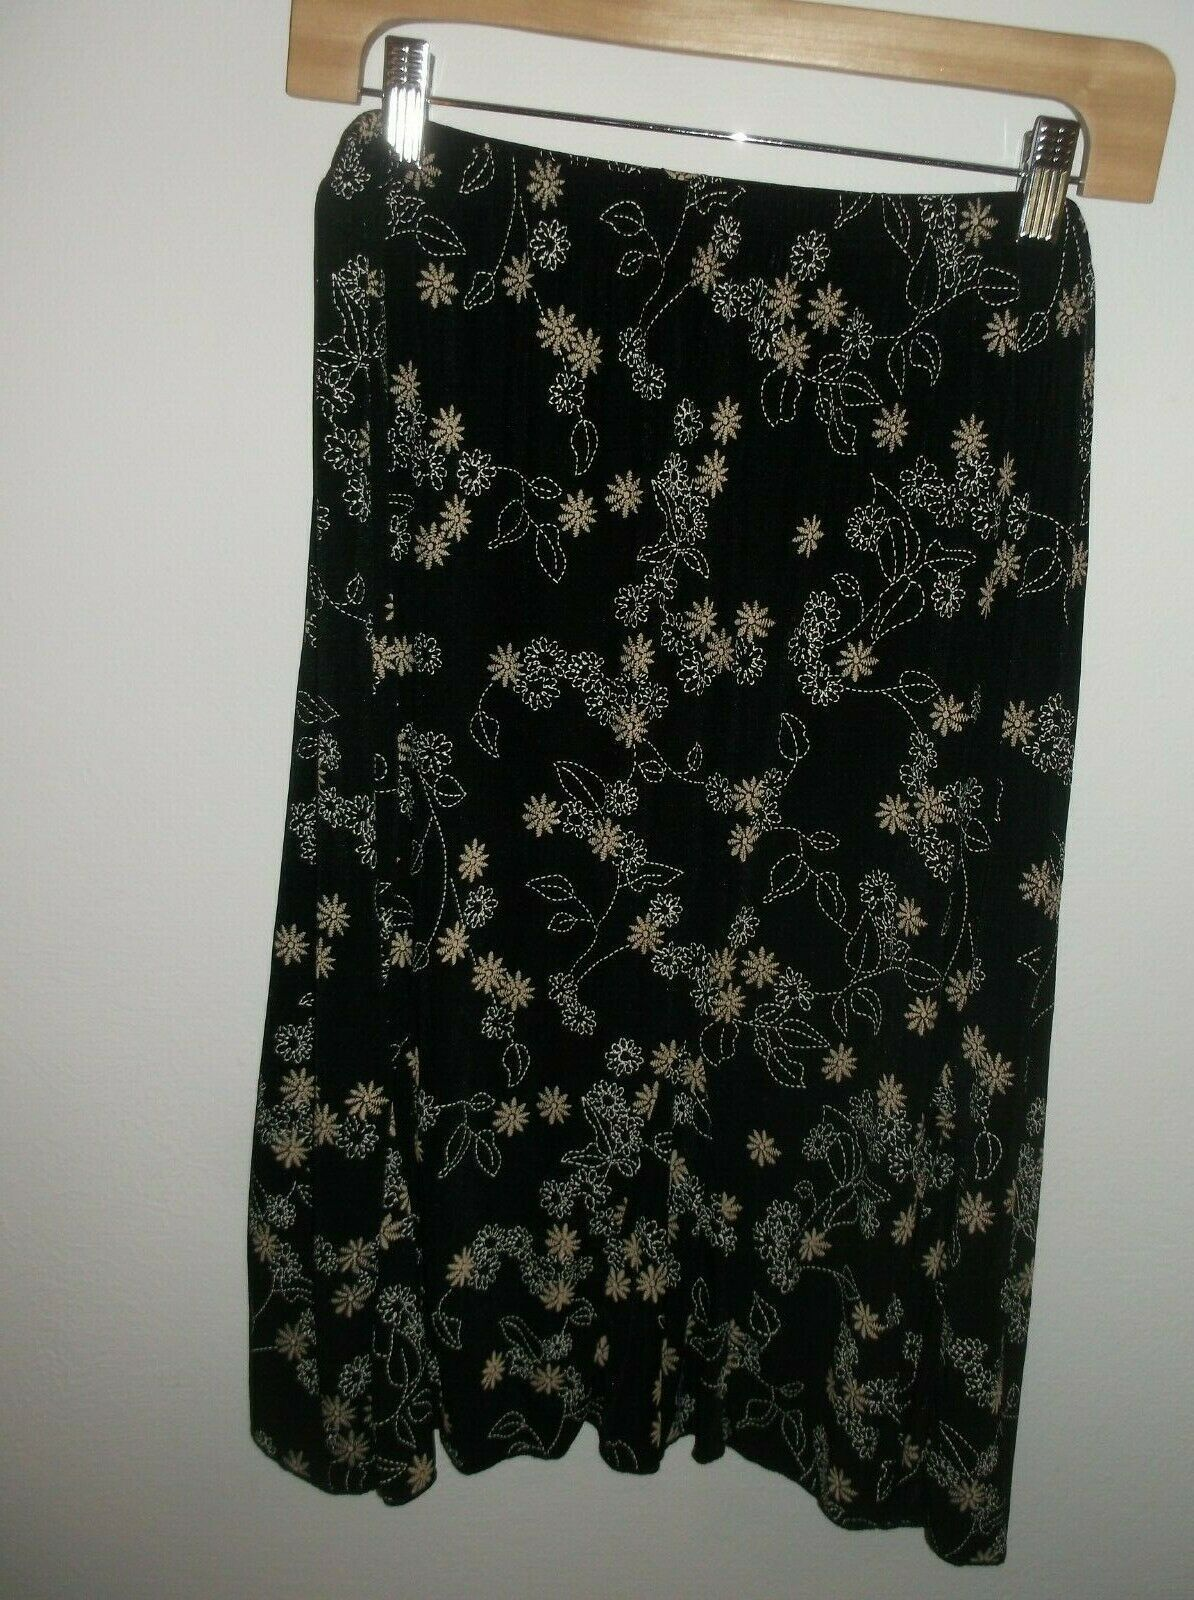 Dressbarn PXL Elastic Waist Skirt Black Background White & Tan Floral Pattern image 5